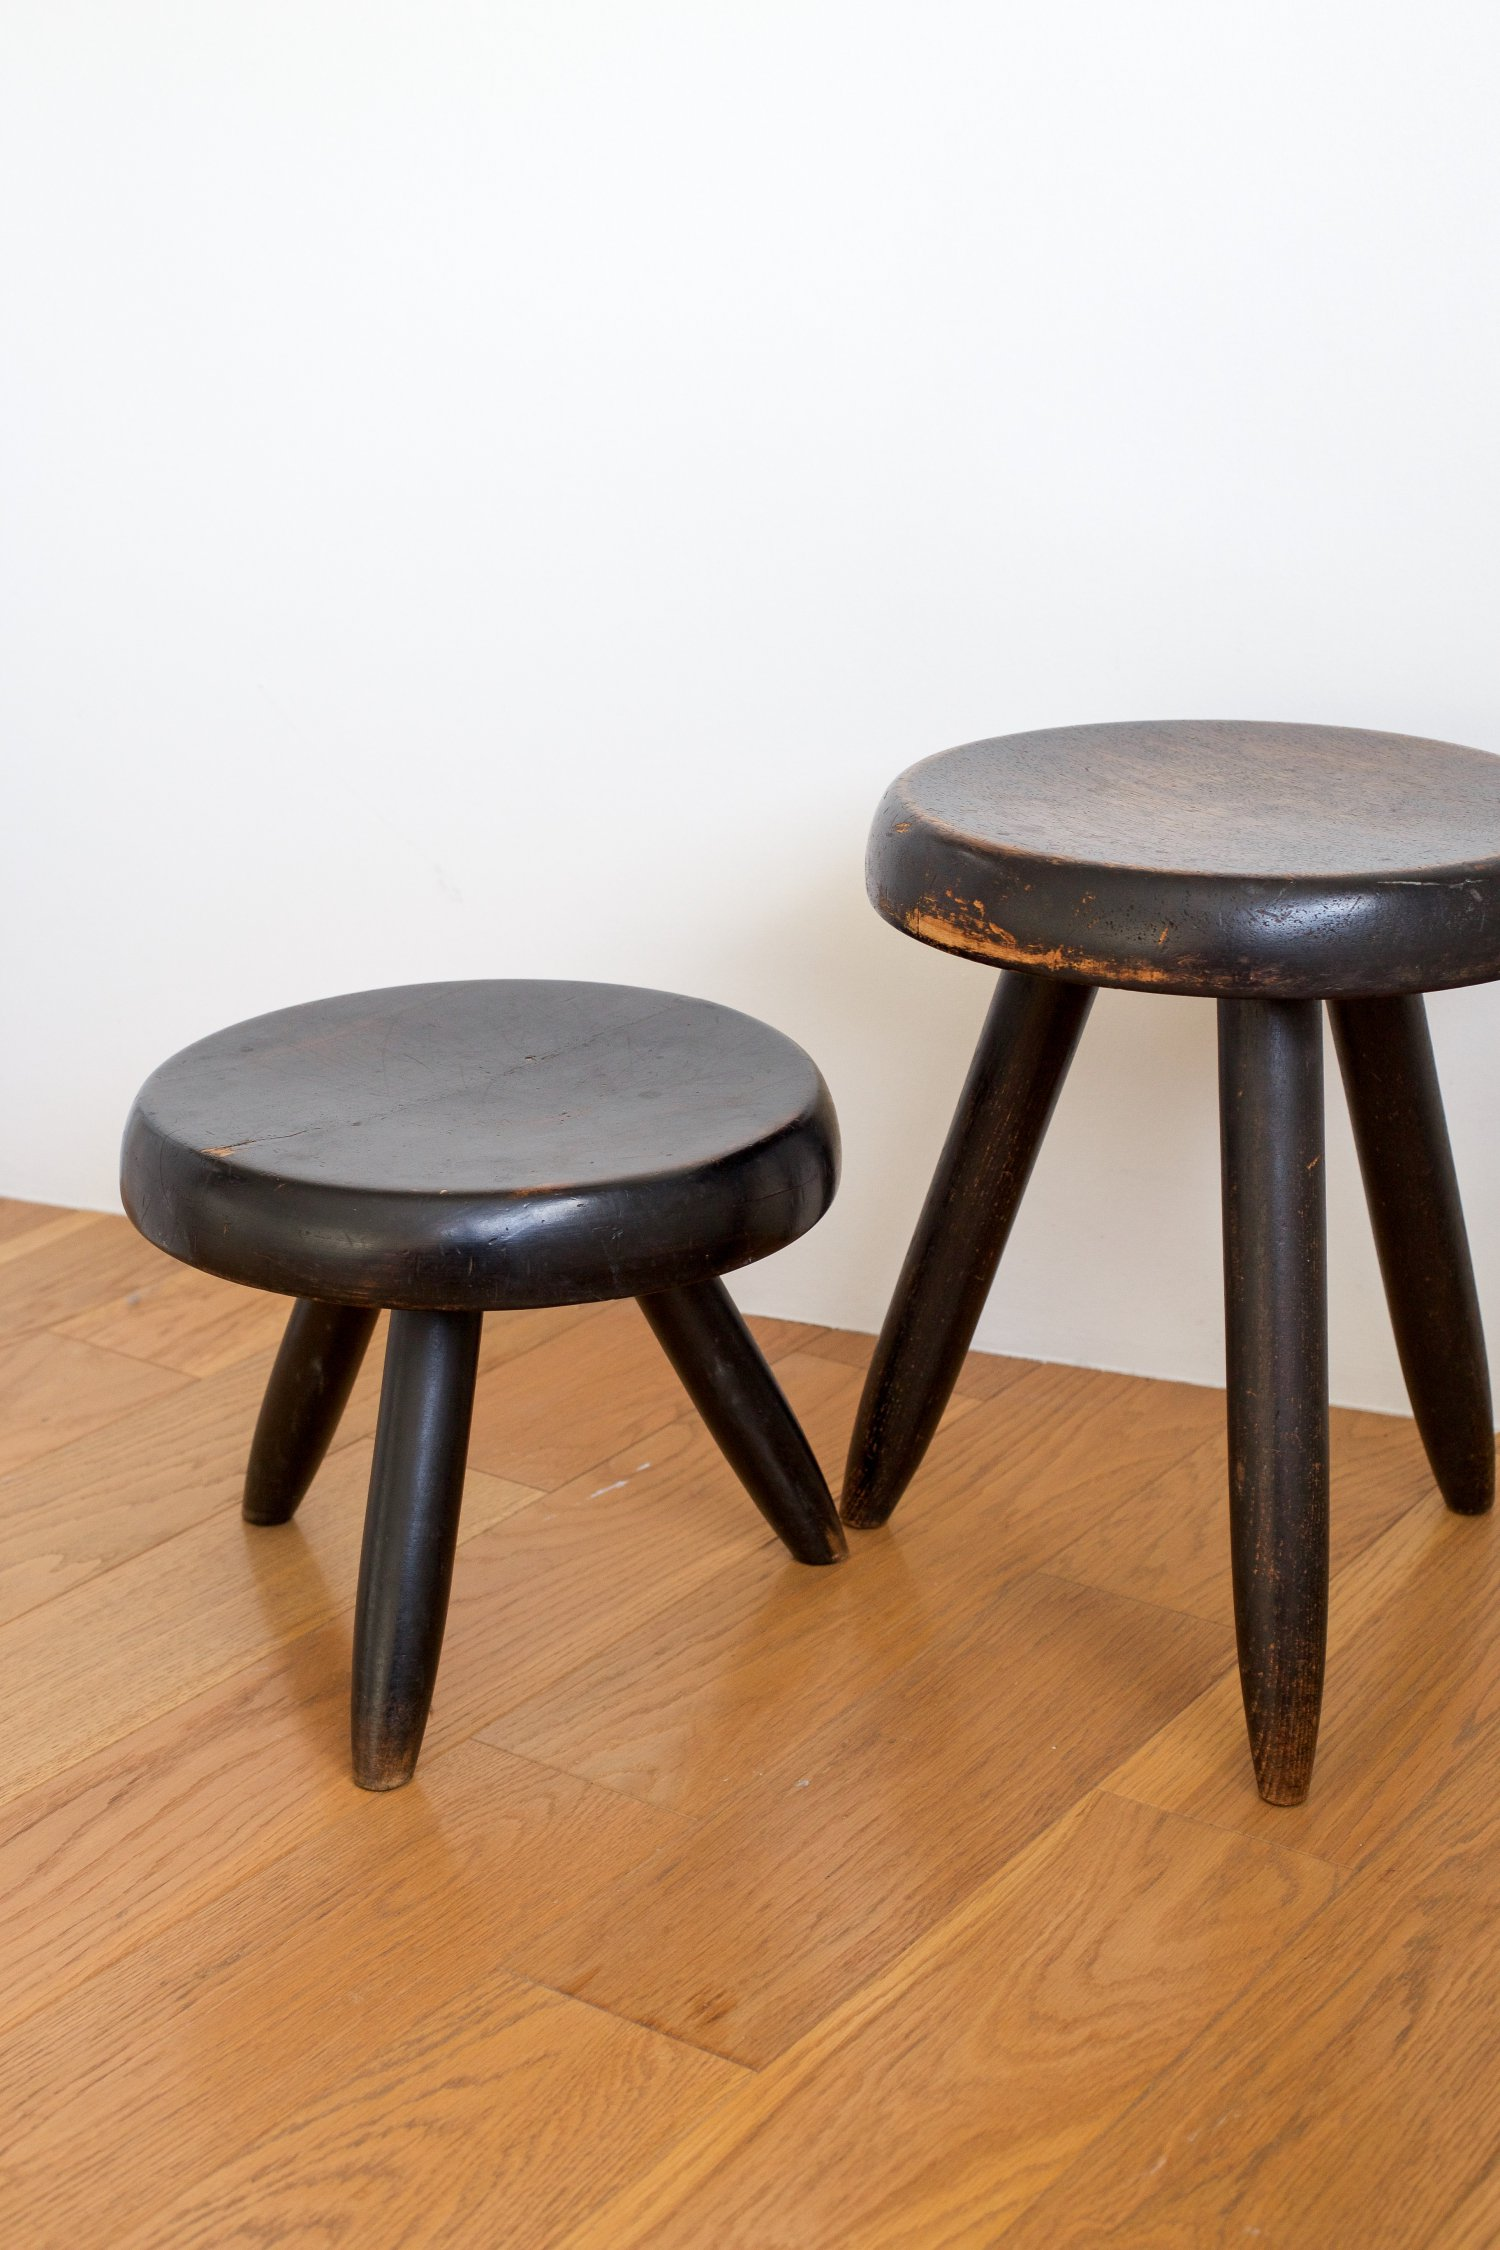 Charlotte Perriand pair of stools.